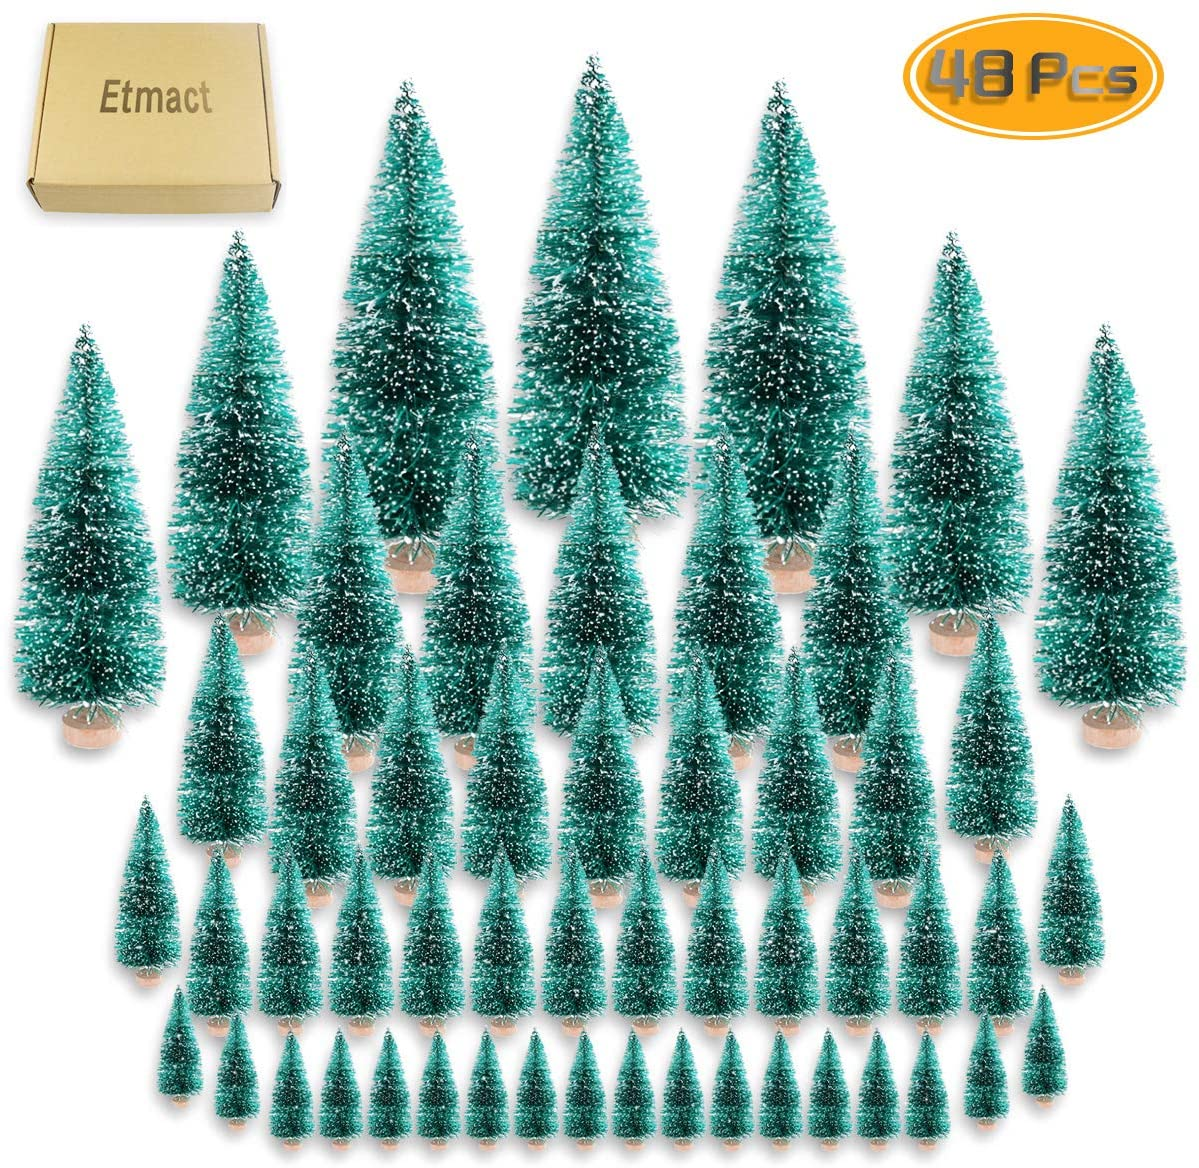 Ectmact Artificial Christmas Tree